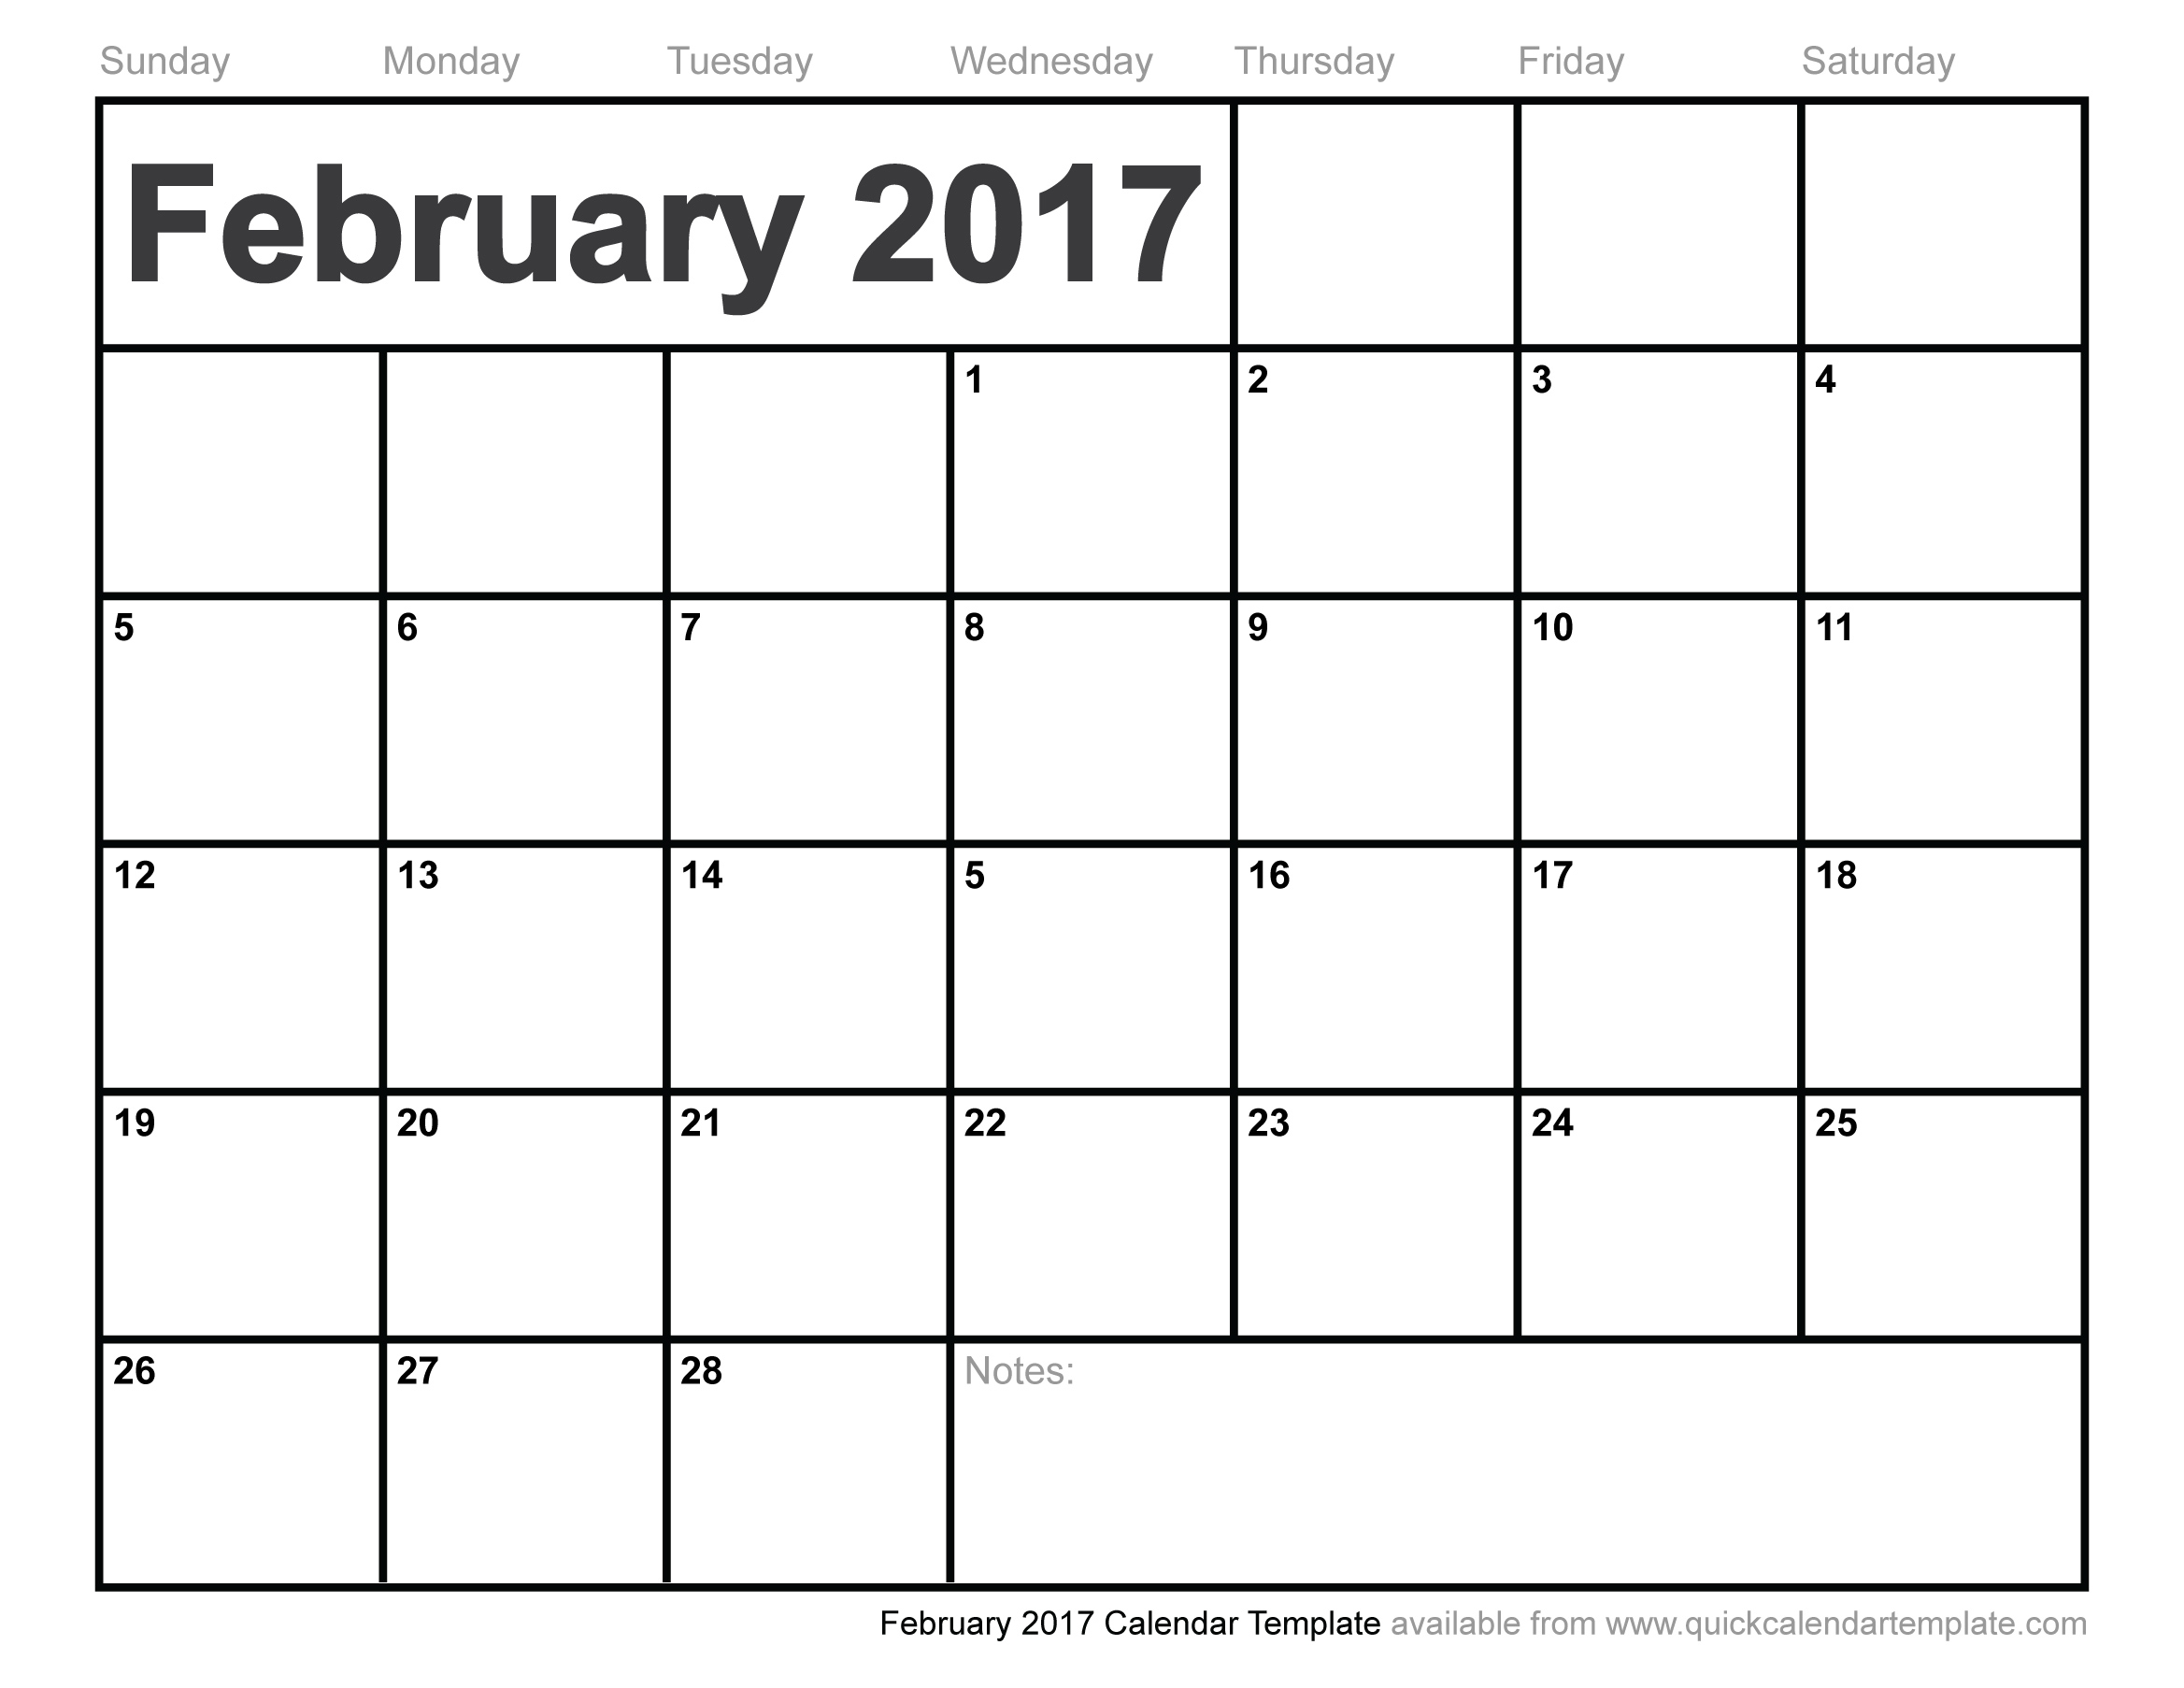 Feb 2017 Calendar Printable Word Pdf Excel Notes Document Blank in February Calendar Printable Template Blank